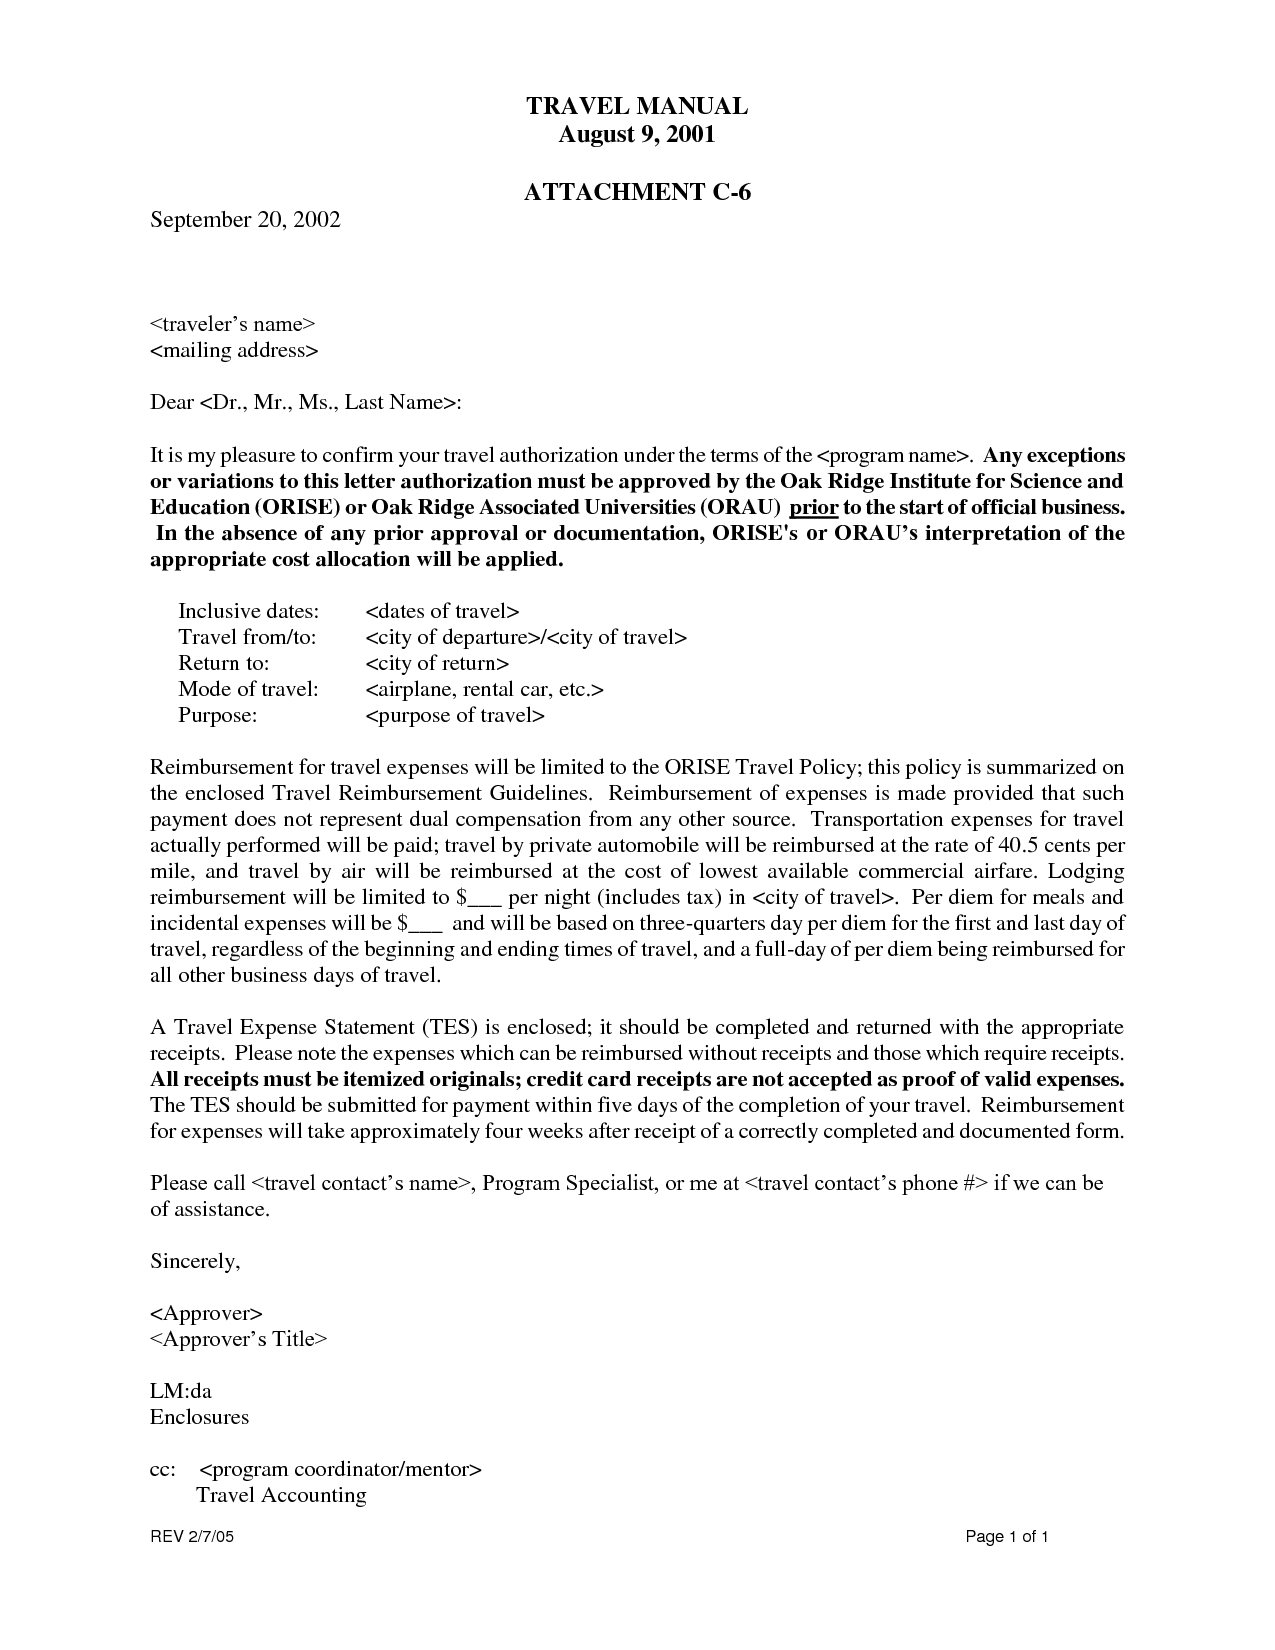 Travel Authorization Letter - Travel authorization letters are to be ...